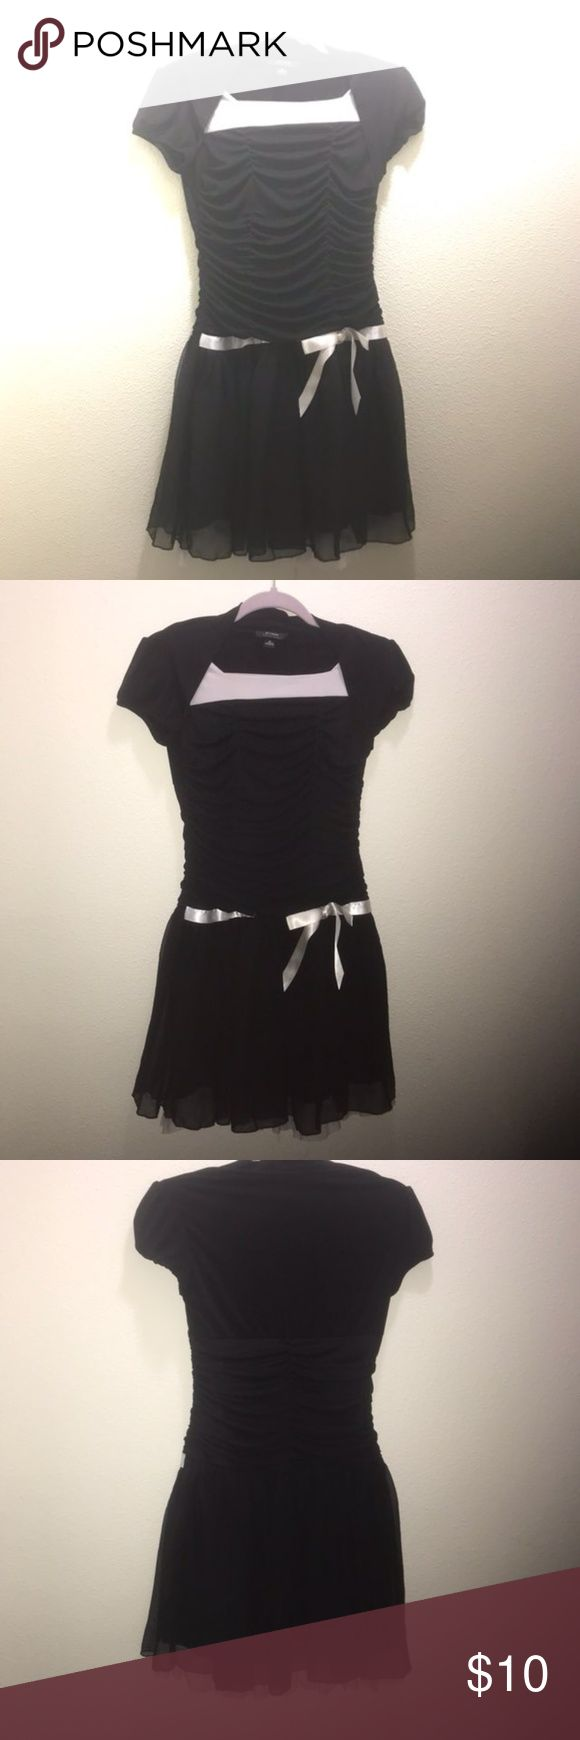 Girls Size 16 Black Stretch Satin Dress Girls size 16 party or holiday dress. Good condition with no holes or rips, some fading/color transfer on the white neckline from washing. Black and white Tulle hem. B Wear Byer Girl Dresses Formal